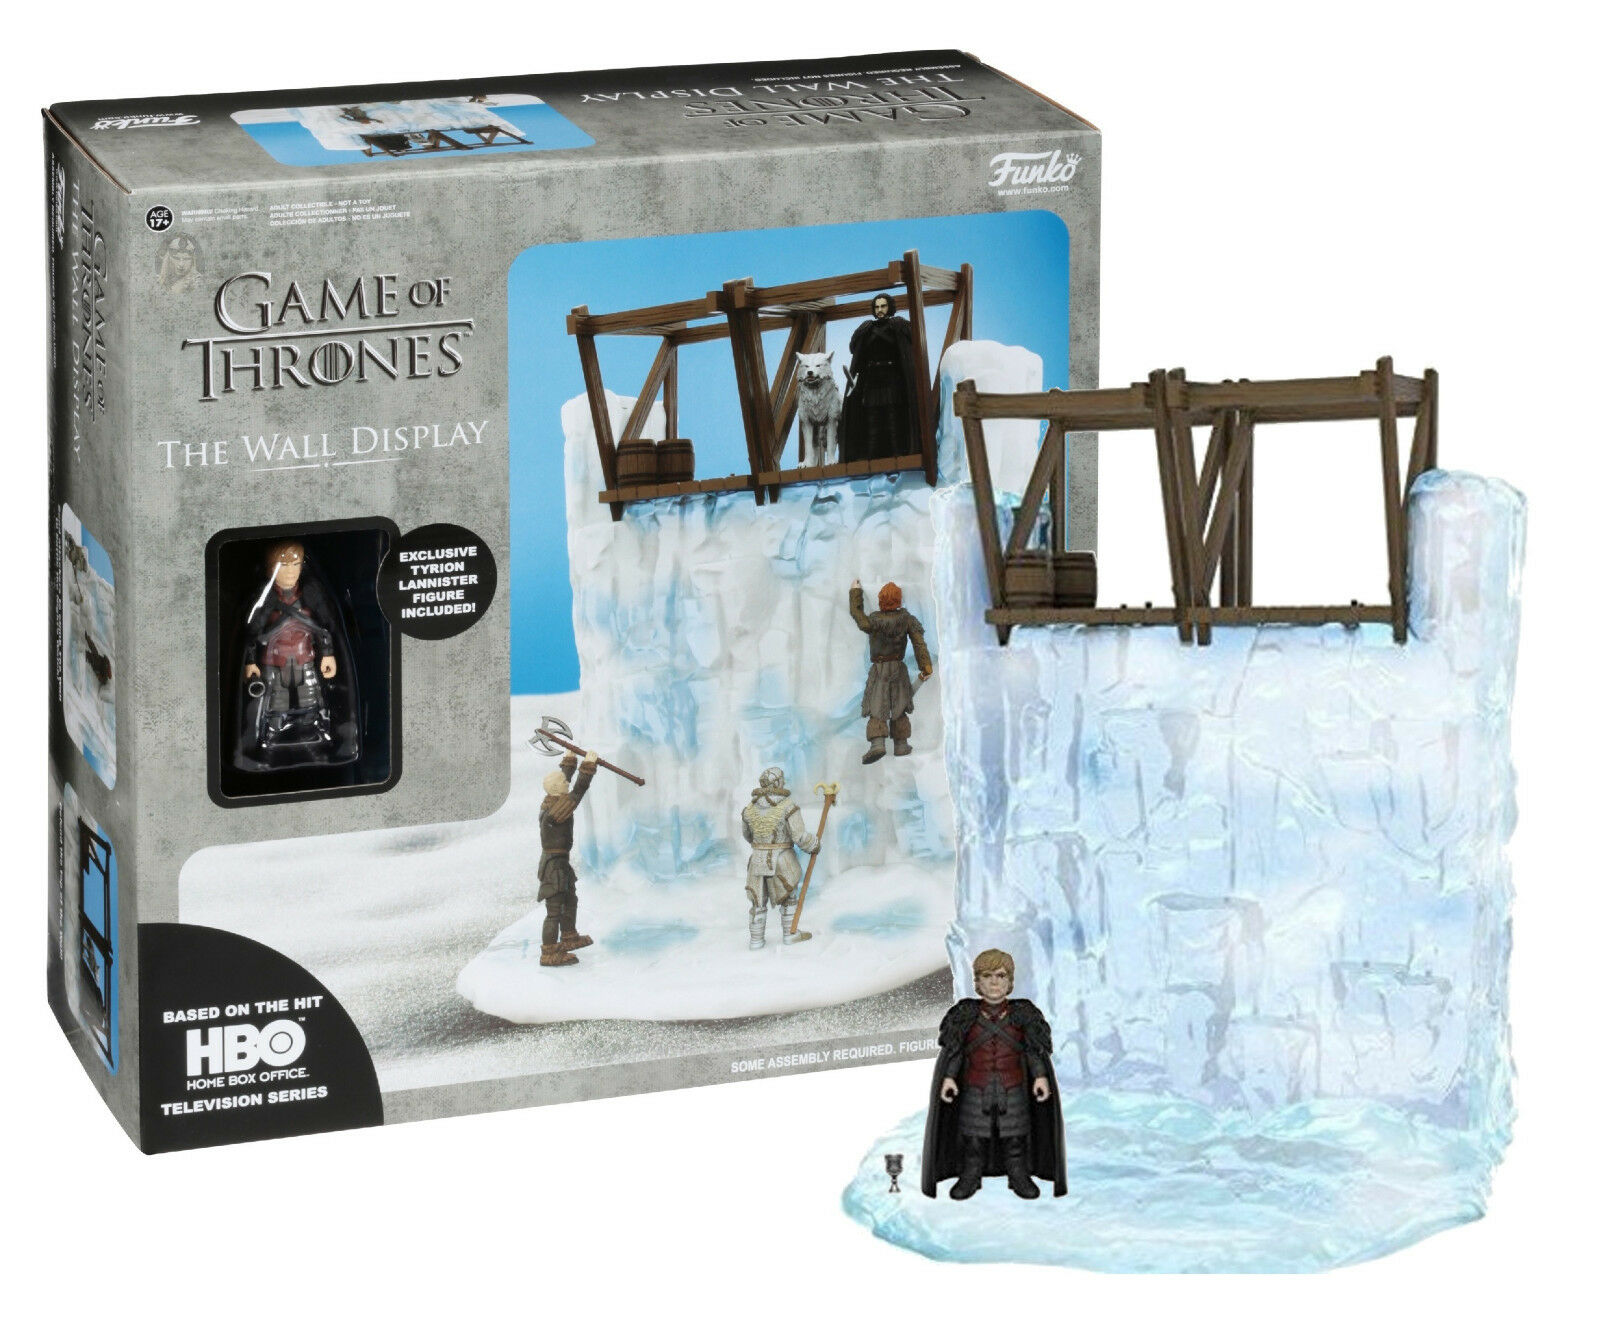 Game of thrones die wand display mit tyrion lannister 3,75  action - figur nib